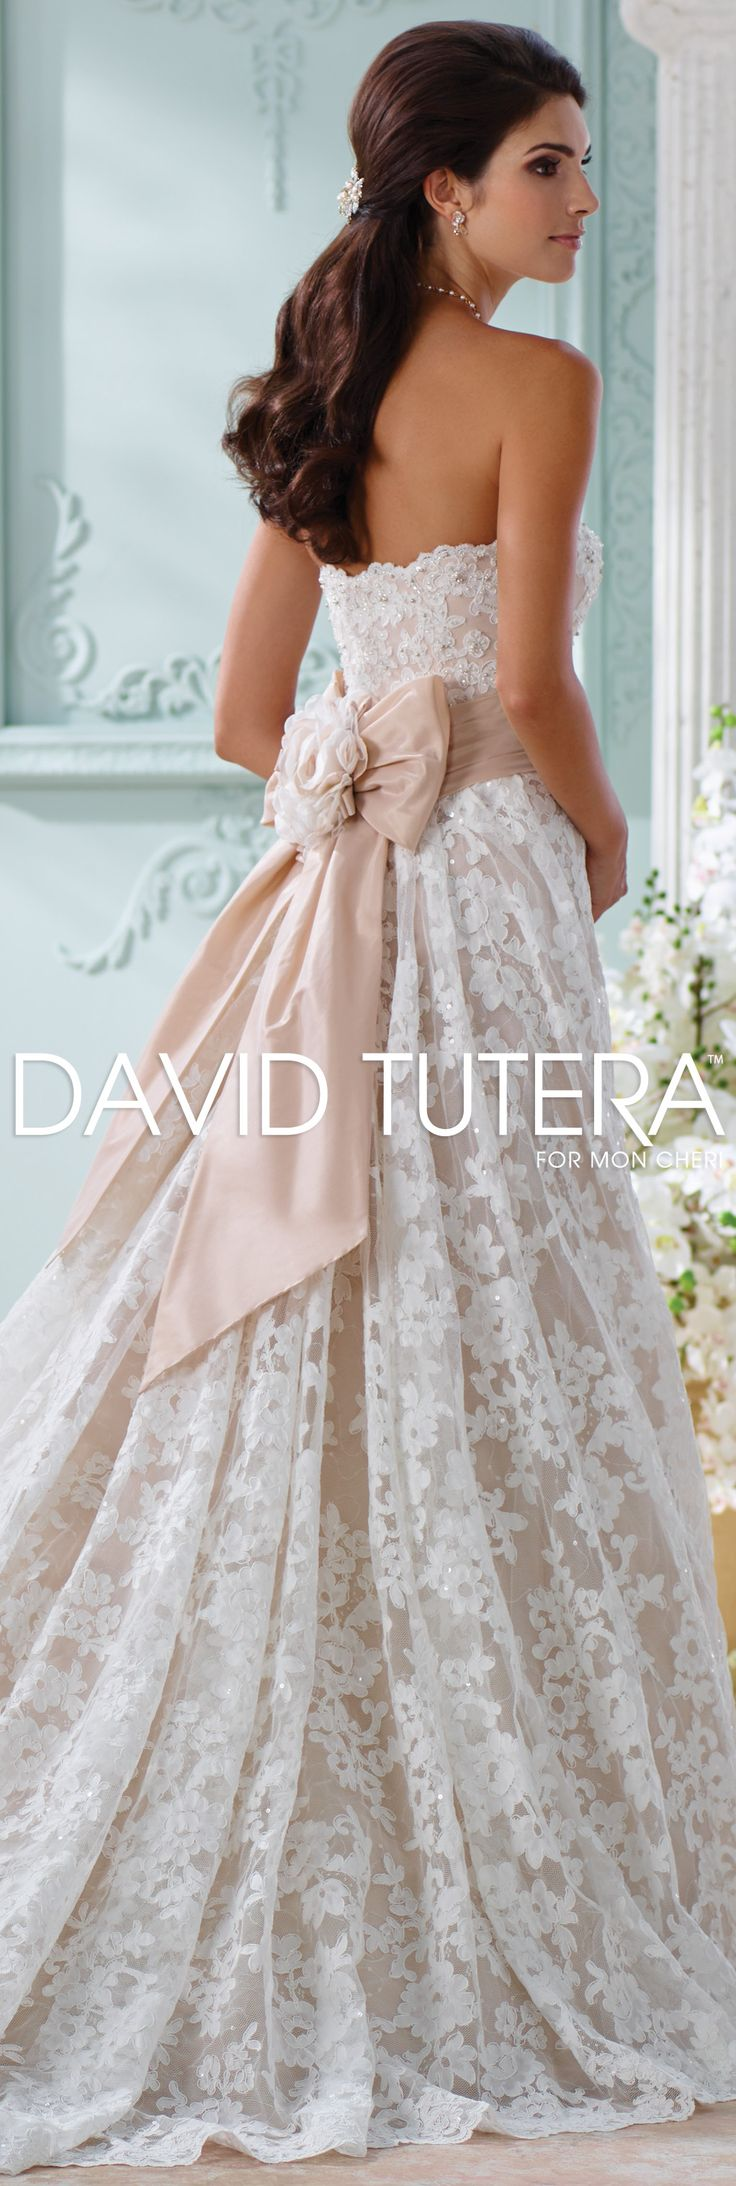 The David Tutera for Mon Cheri Spring 2016 Wedding Gown Collection - Style No. 116219 Yalene #laceweddingdresses Jewelry by @davidtuteraembellish Hope Earrings and Necklace www.davidtuteraembellish.com